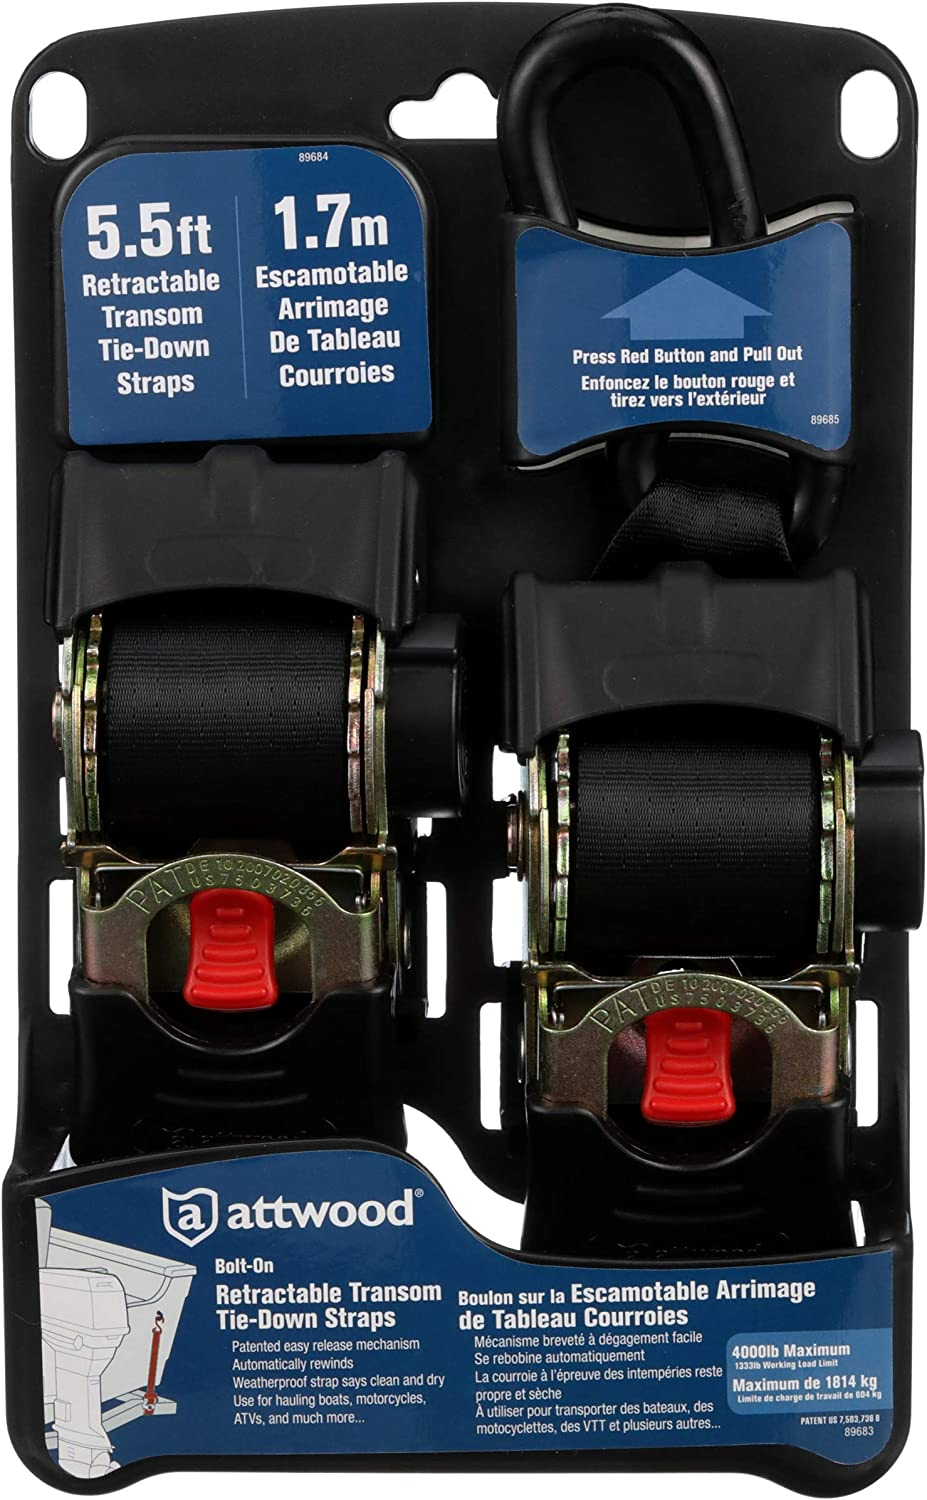 Set of 2 Attwood Boat Trailer Tie-Down Straps 15260-8Retractable Transom